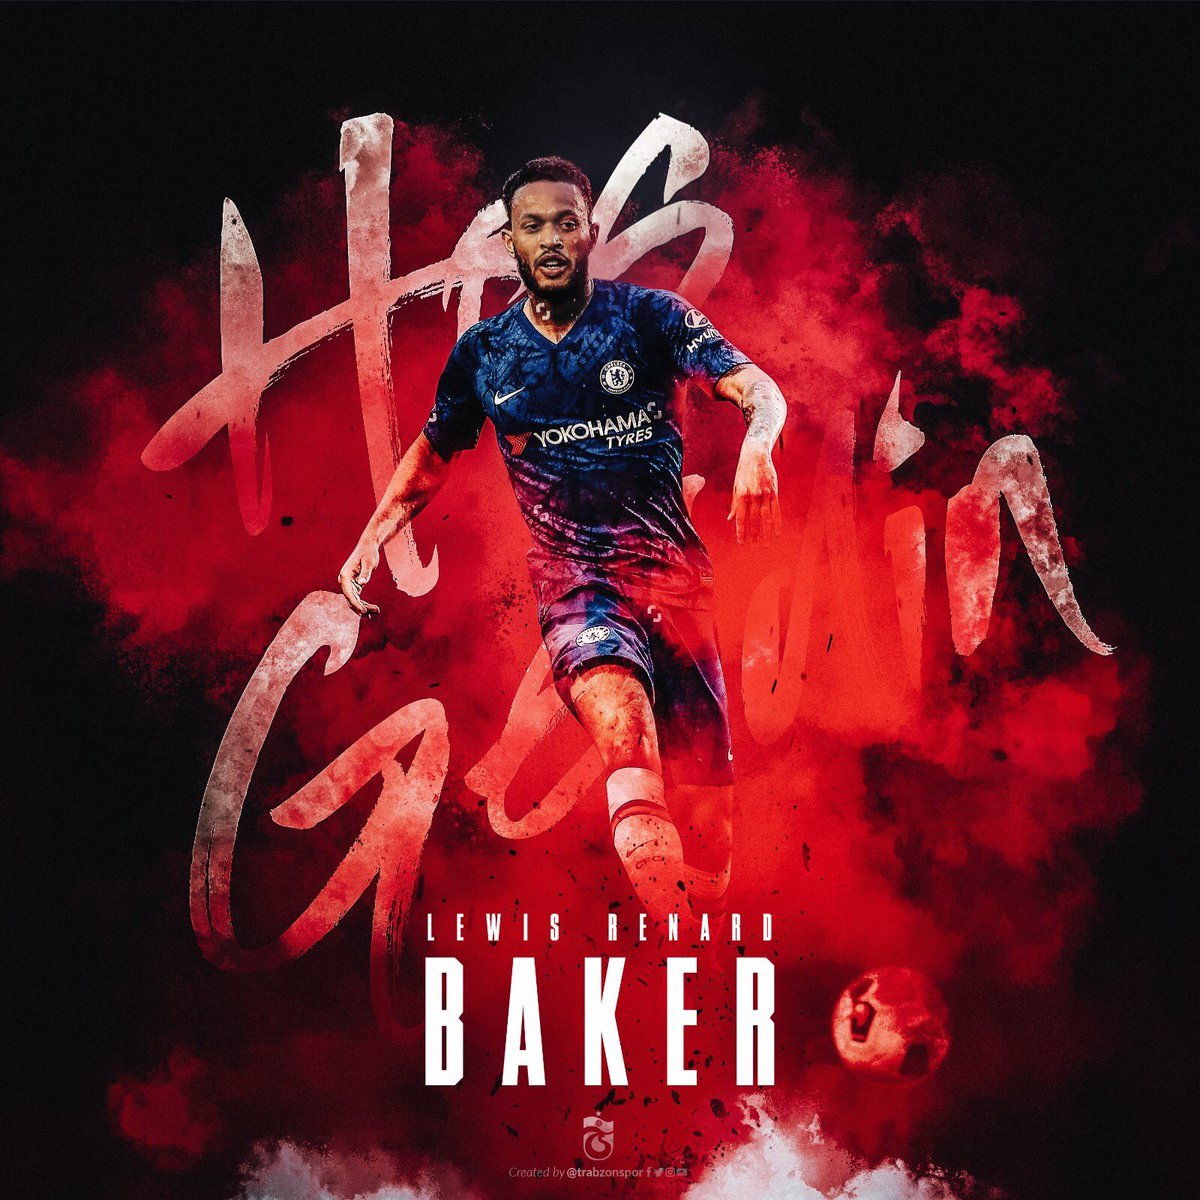 Our club agrees with Chelsea F.C. to transfer Lewis Renard Baker. The professional player agrees 1 year deal. https://t.co/RIvkXbOBHh